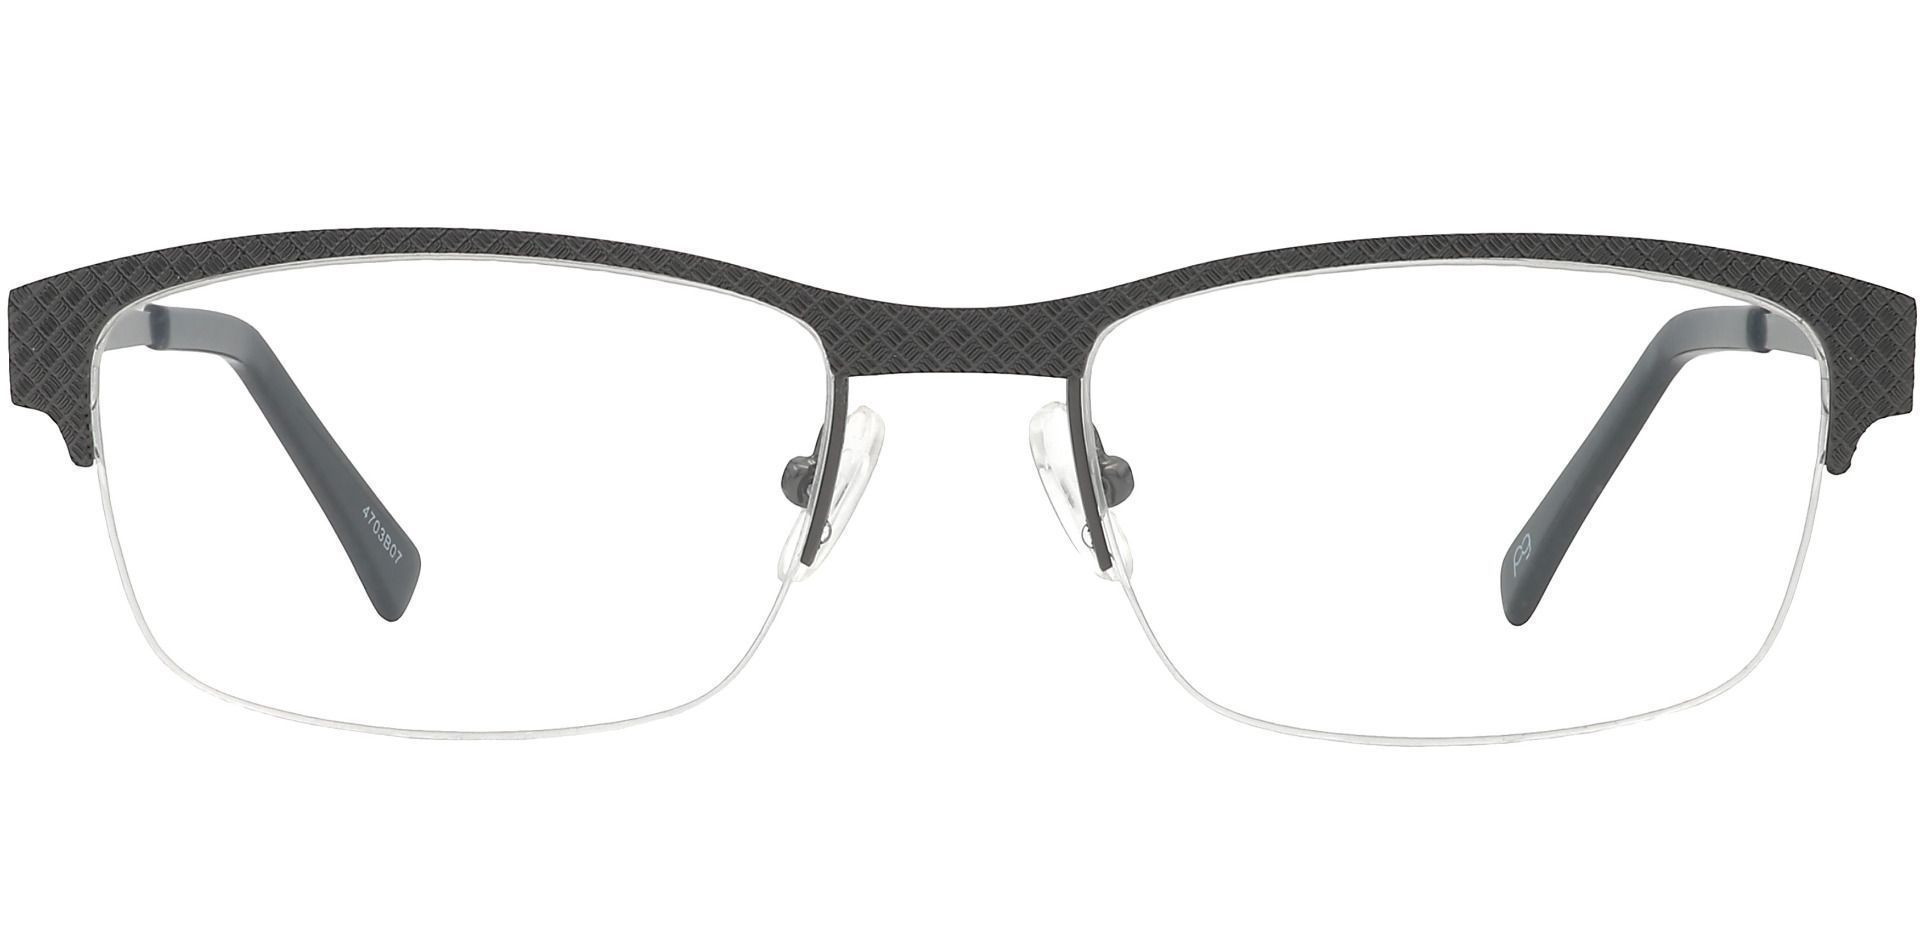 Bret Rectangle Non-Rx Glasses - Gray